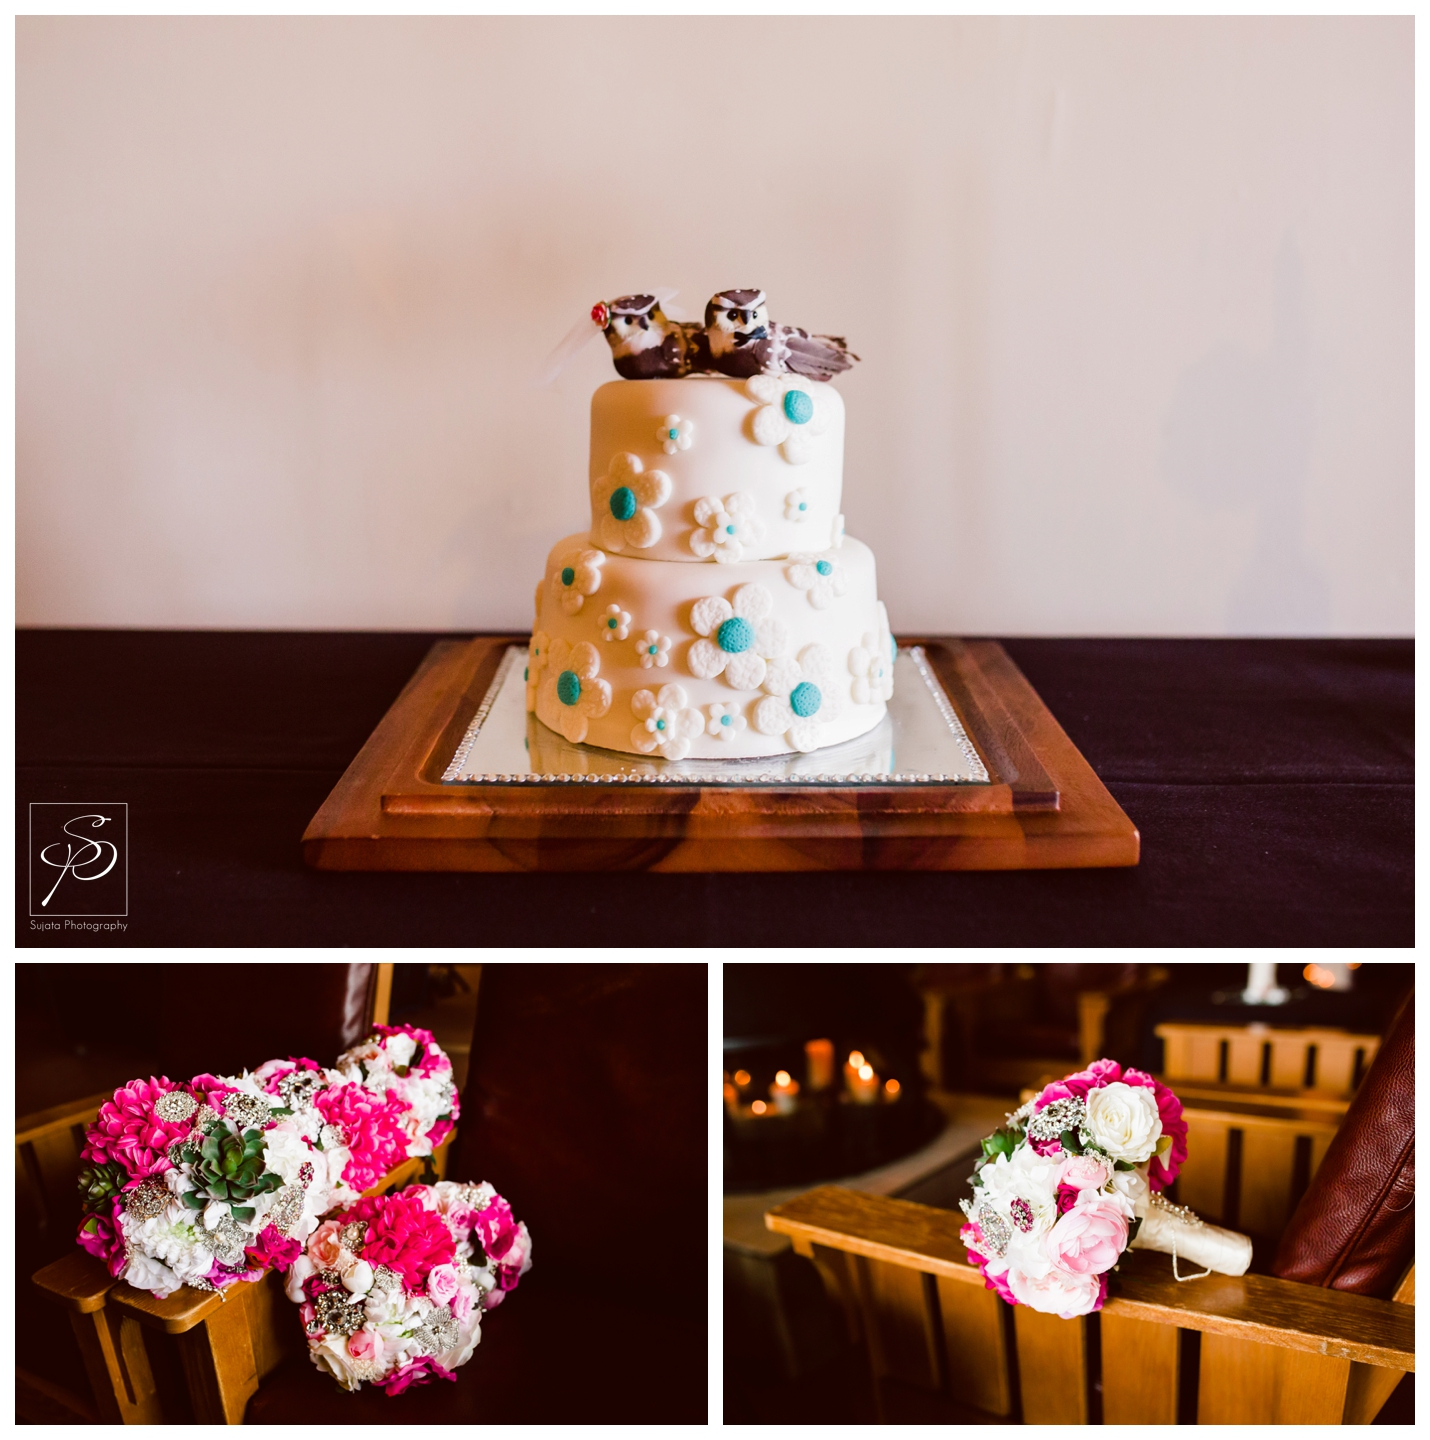 Wedding cake with love birds topper at Lake Louise Ski Hill wedding reception